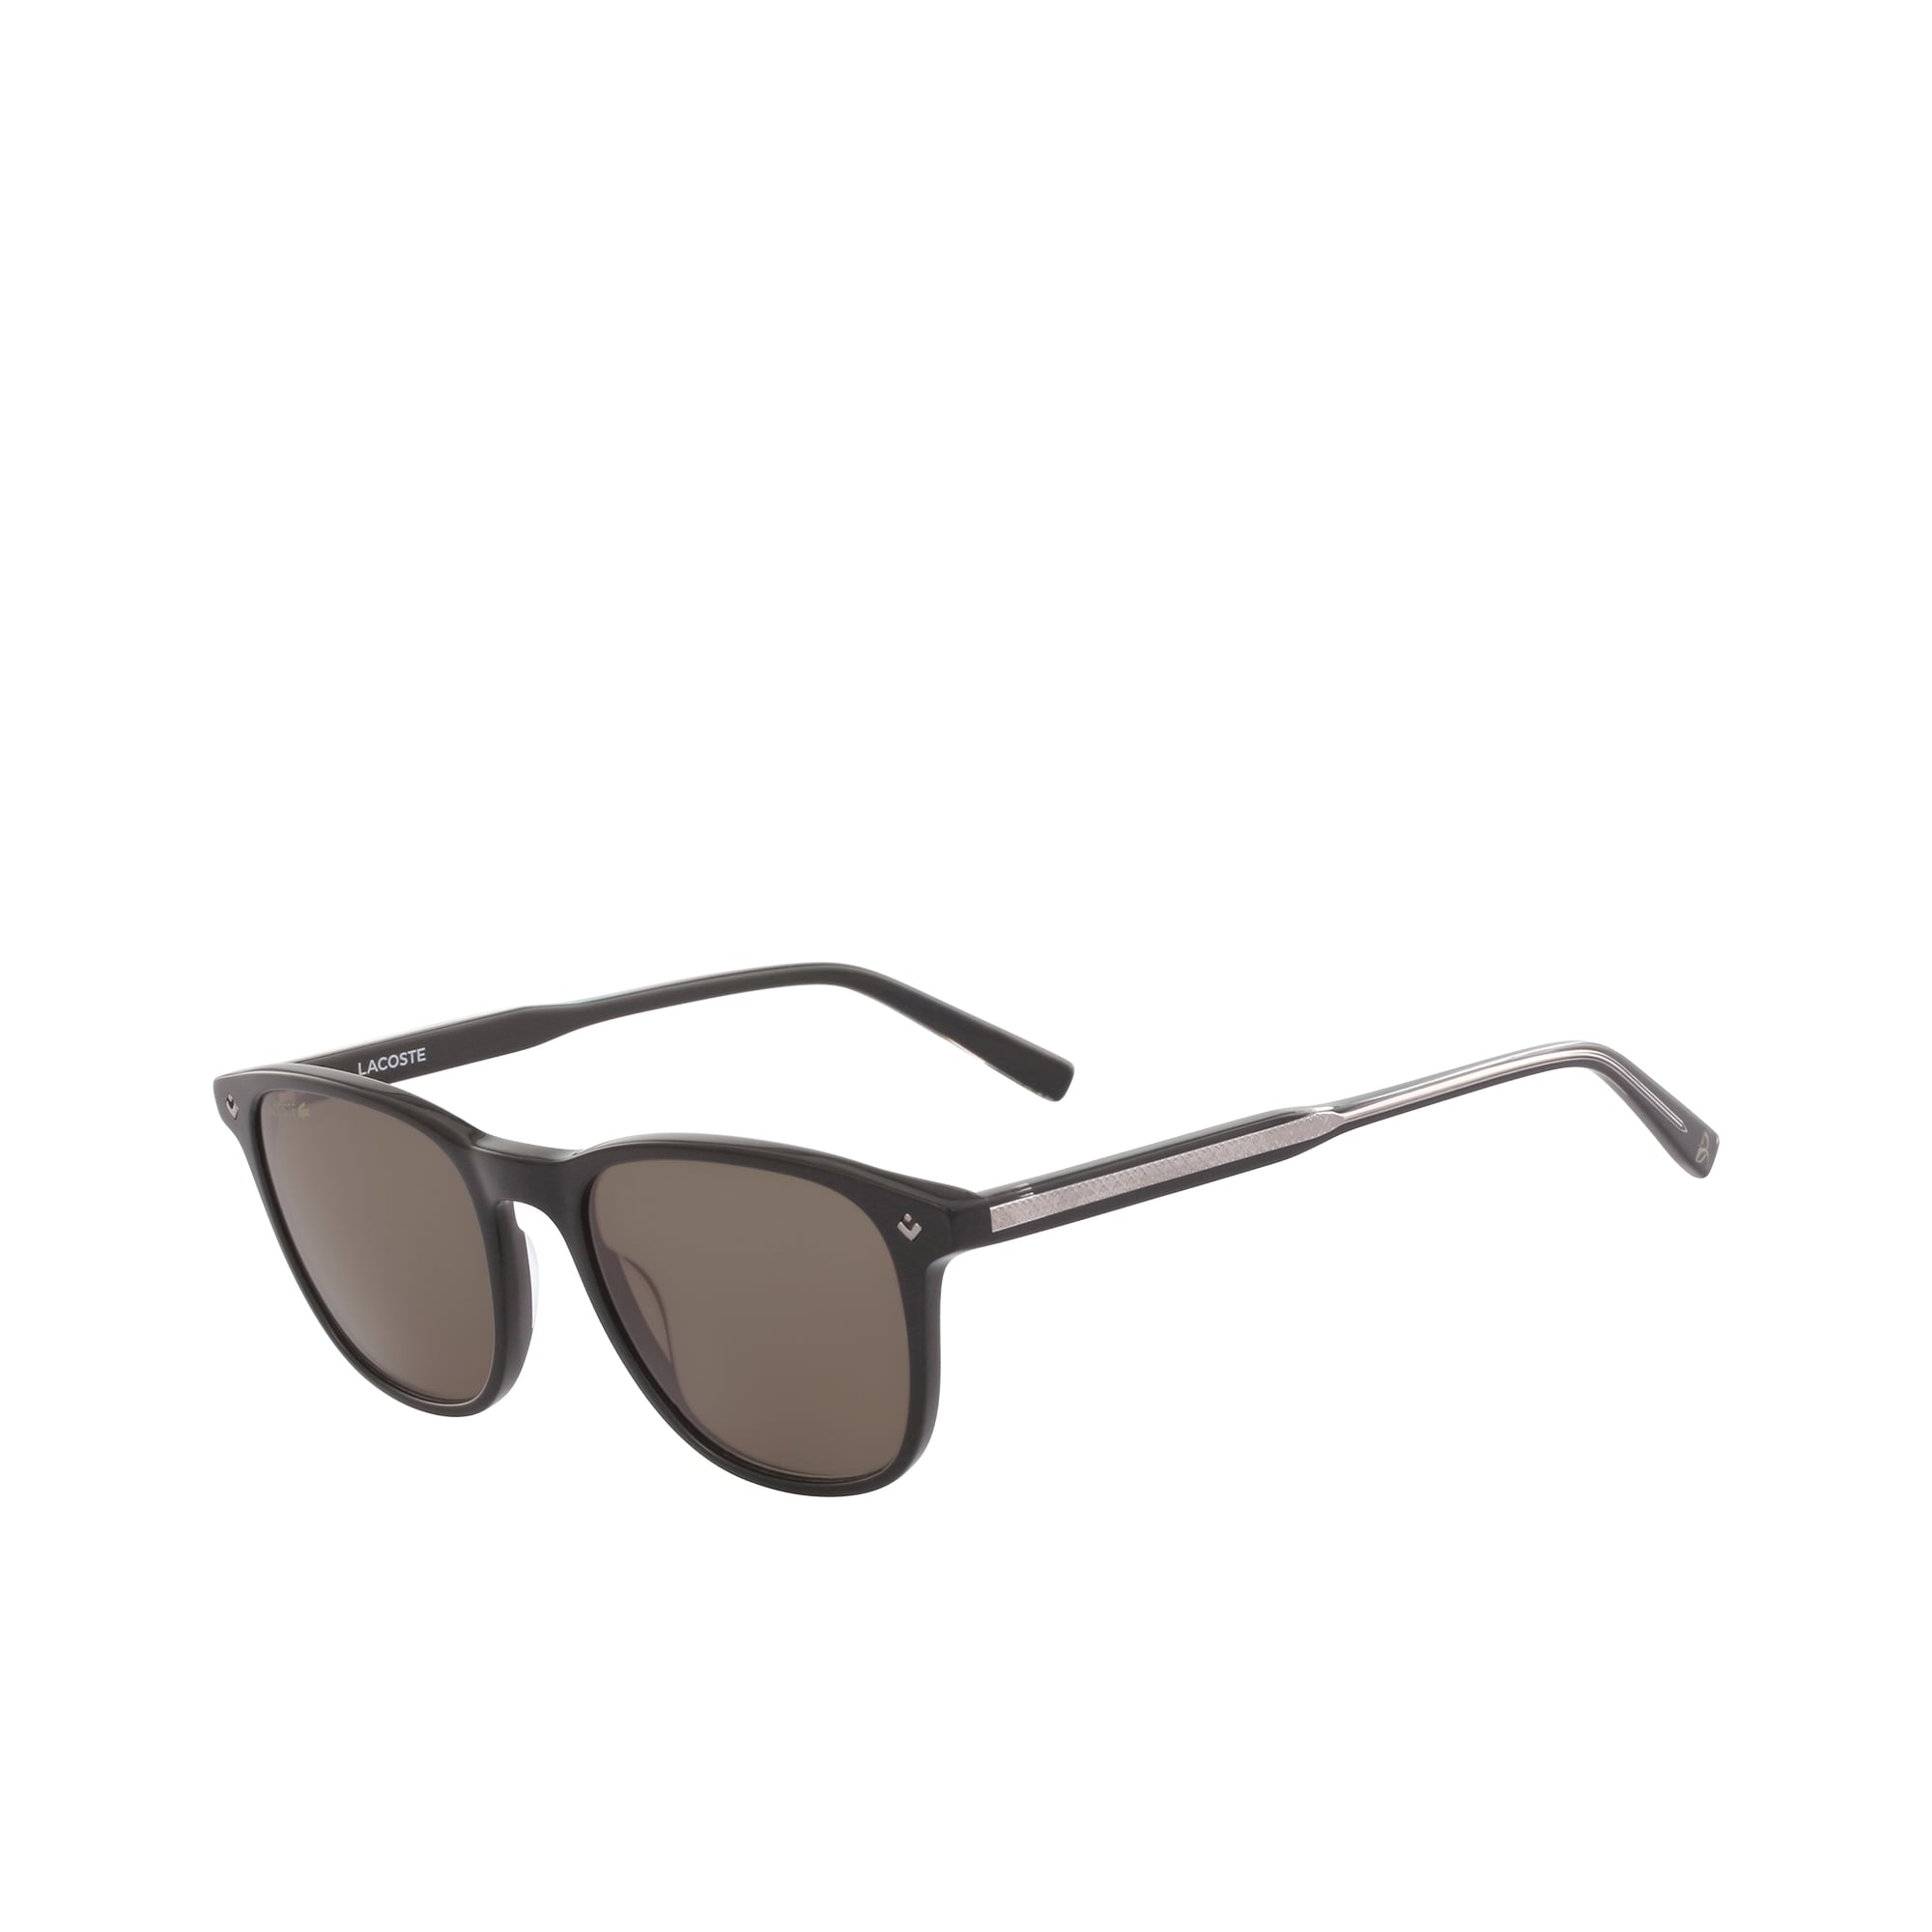 dca2c7f263 Men s Sunglasses